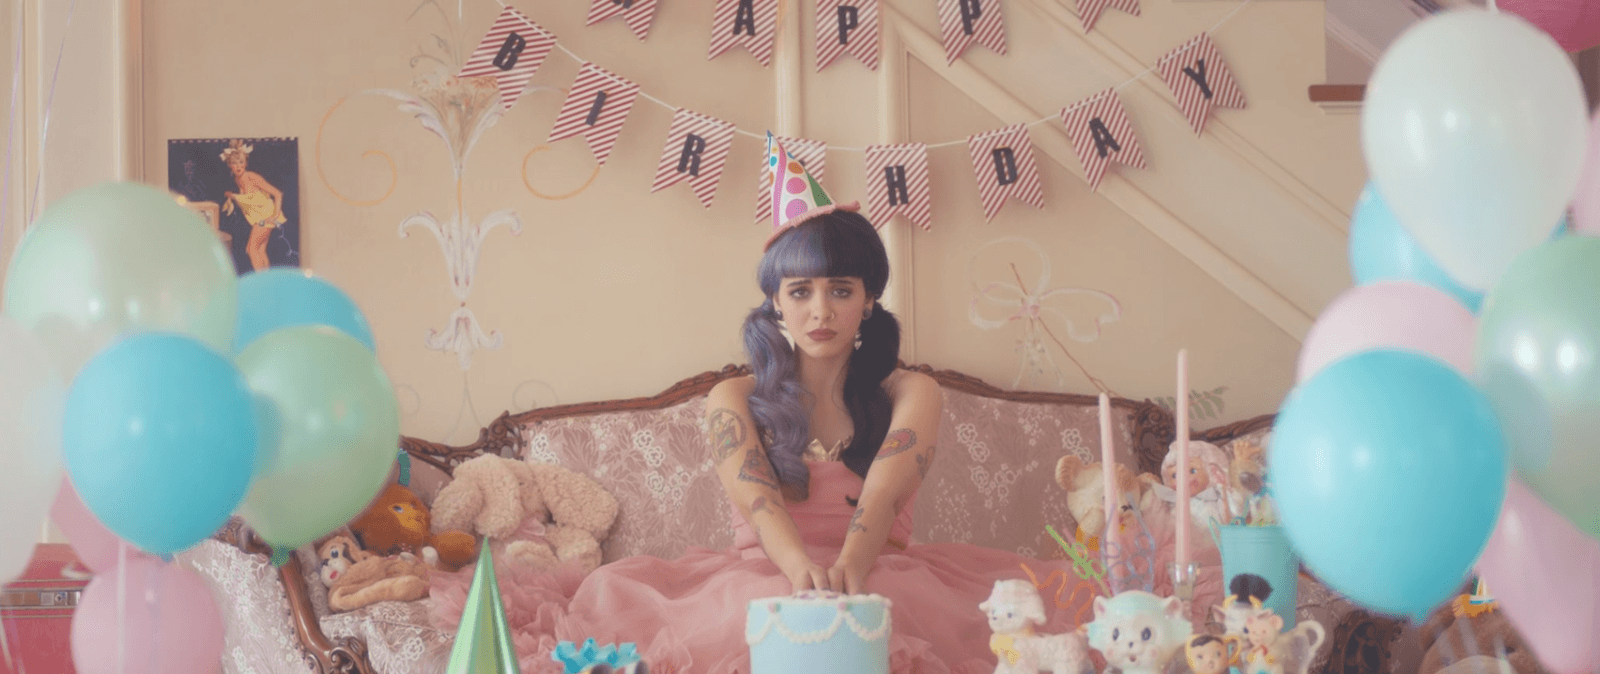 Melanie Martinez Cry Baby Wallpapers